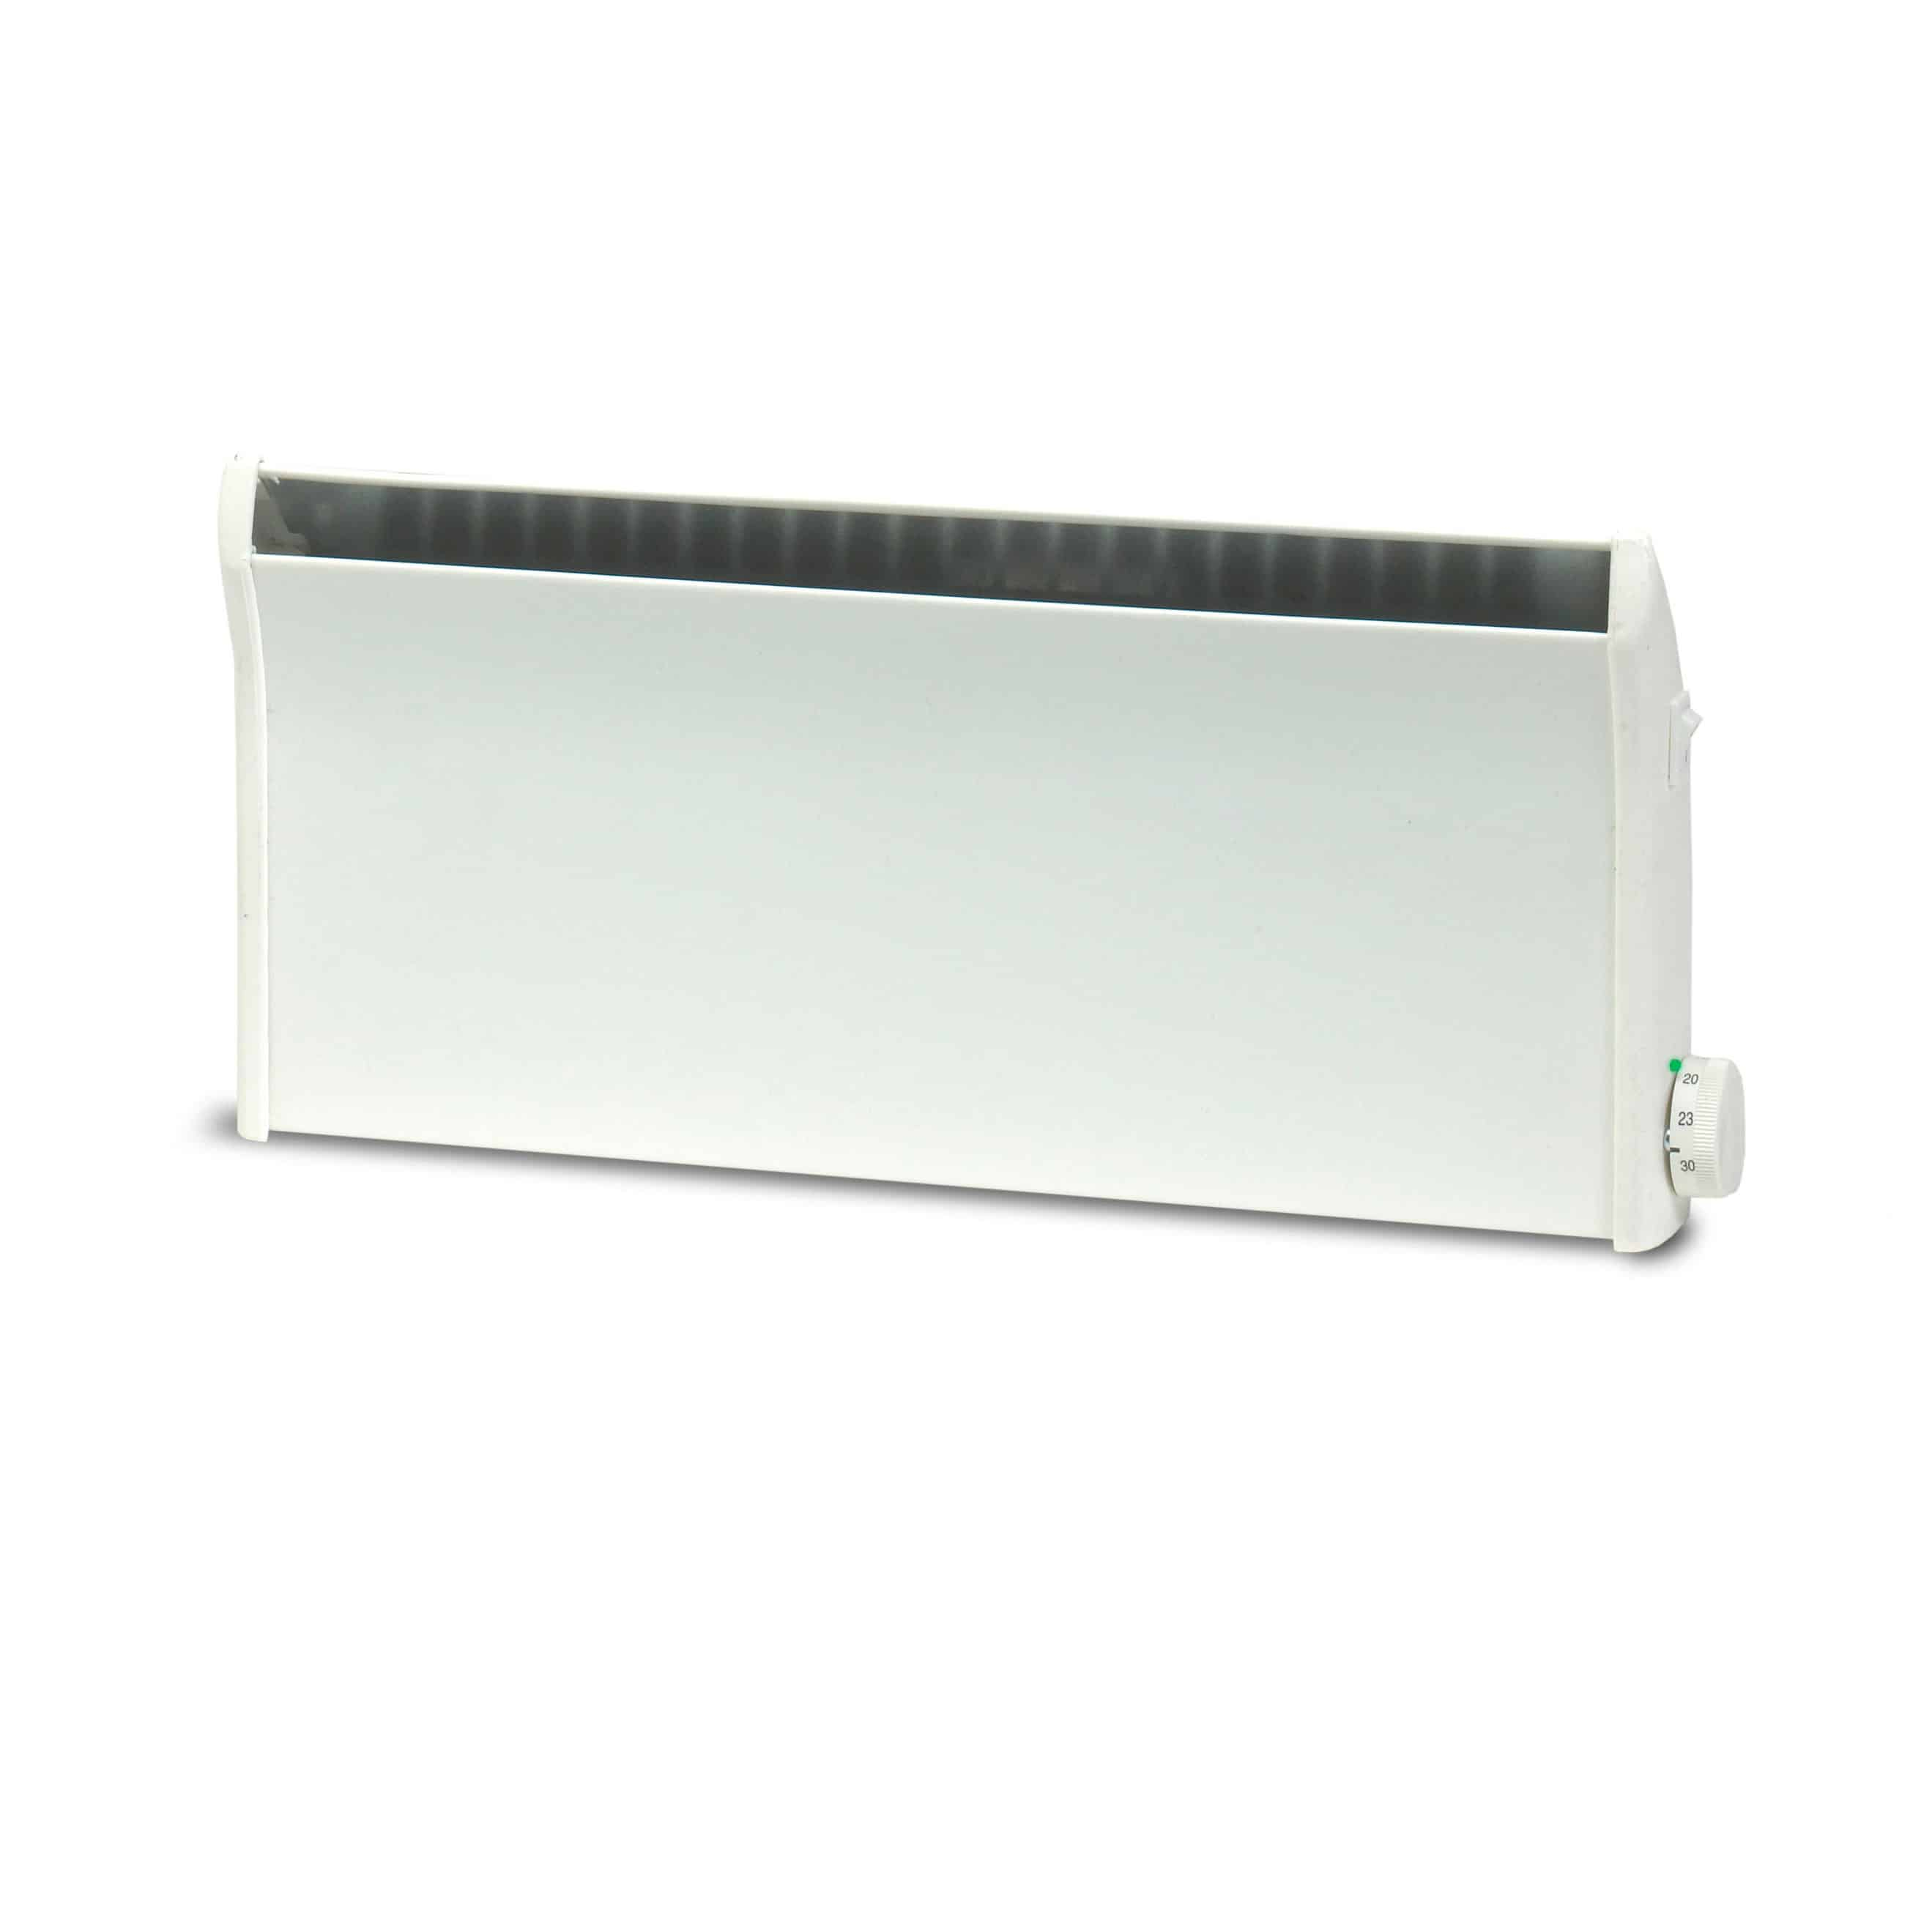 Photos of Low Profile Electric Baseboard Heating